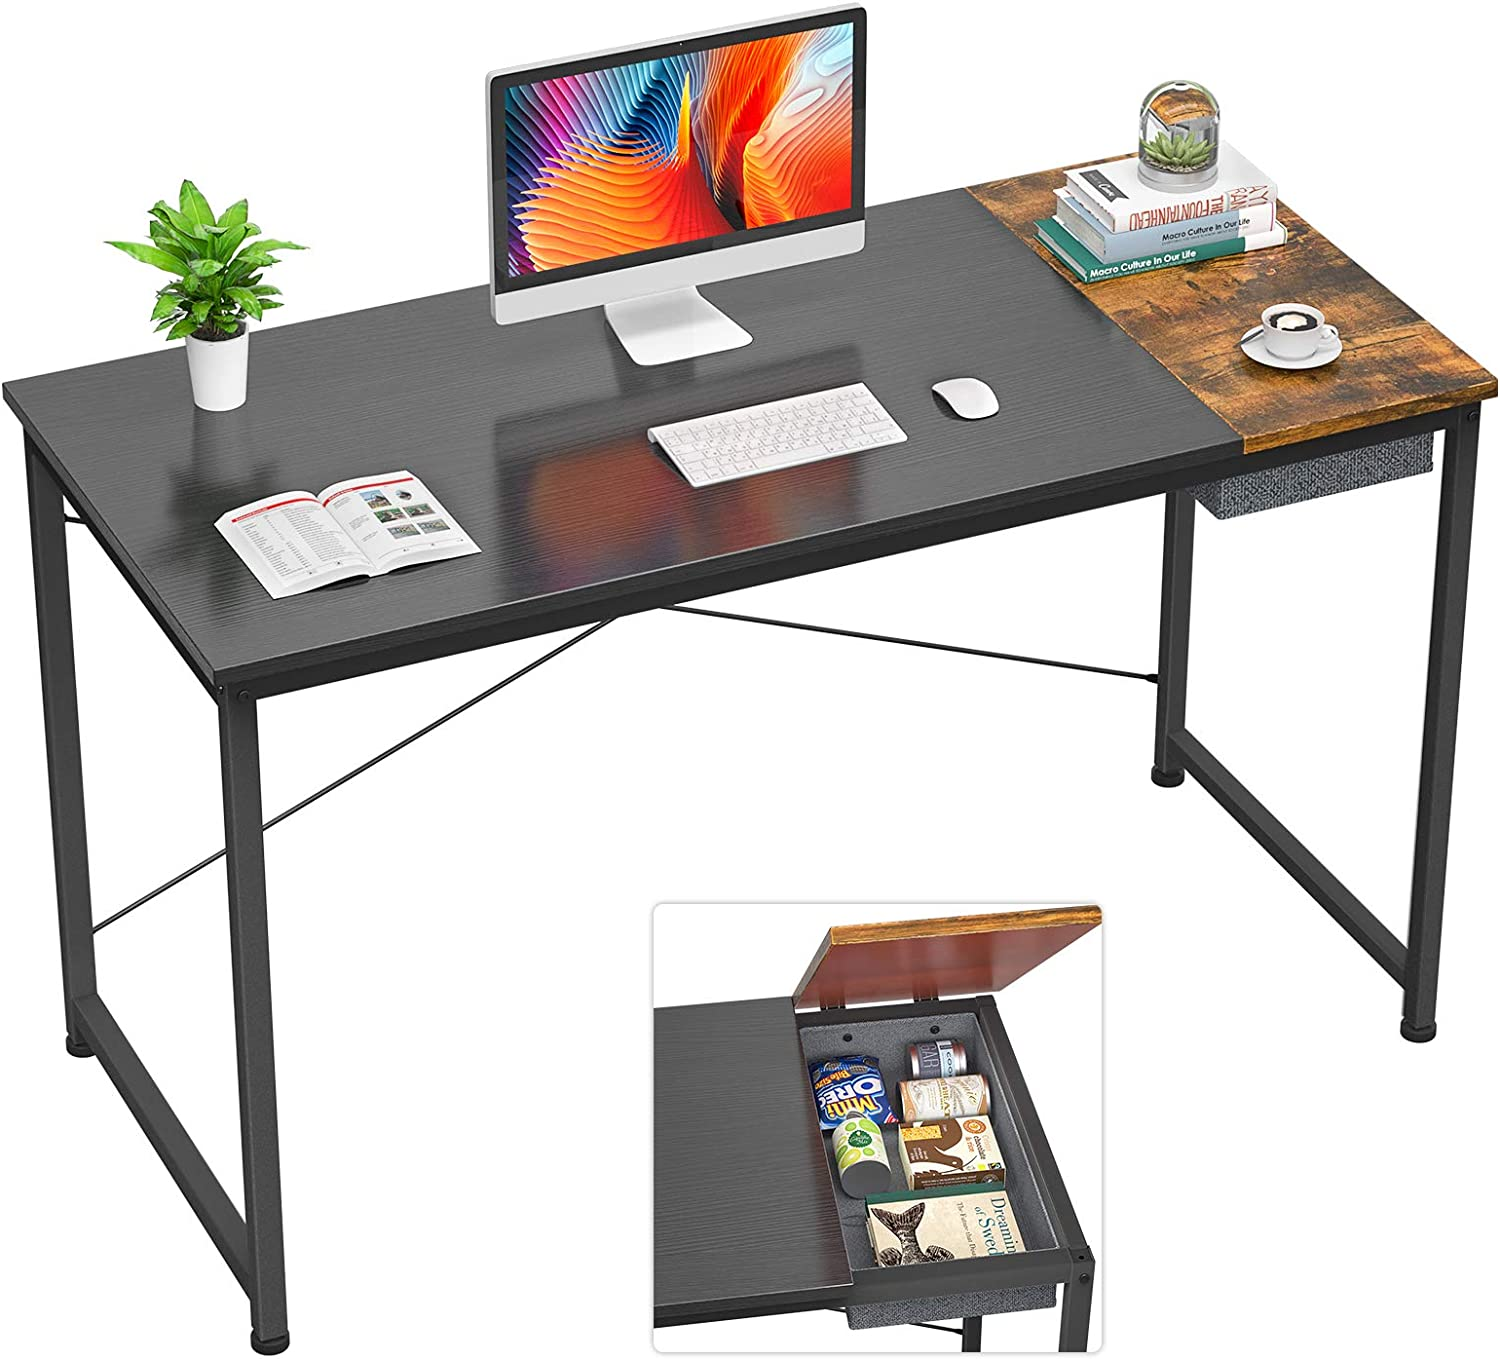 """Foxemart 47 Inch Computer Desks with Drawer Modern Study Writing Table, 47"""" Simple Sturdy Laptop Home Office Desk, Black and Rustic Brown"""